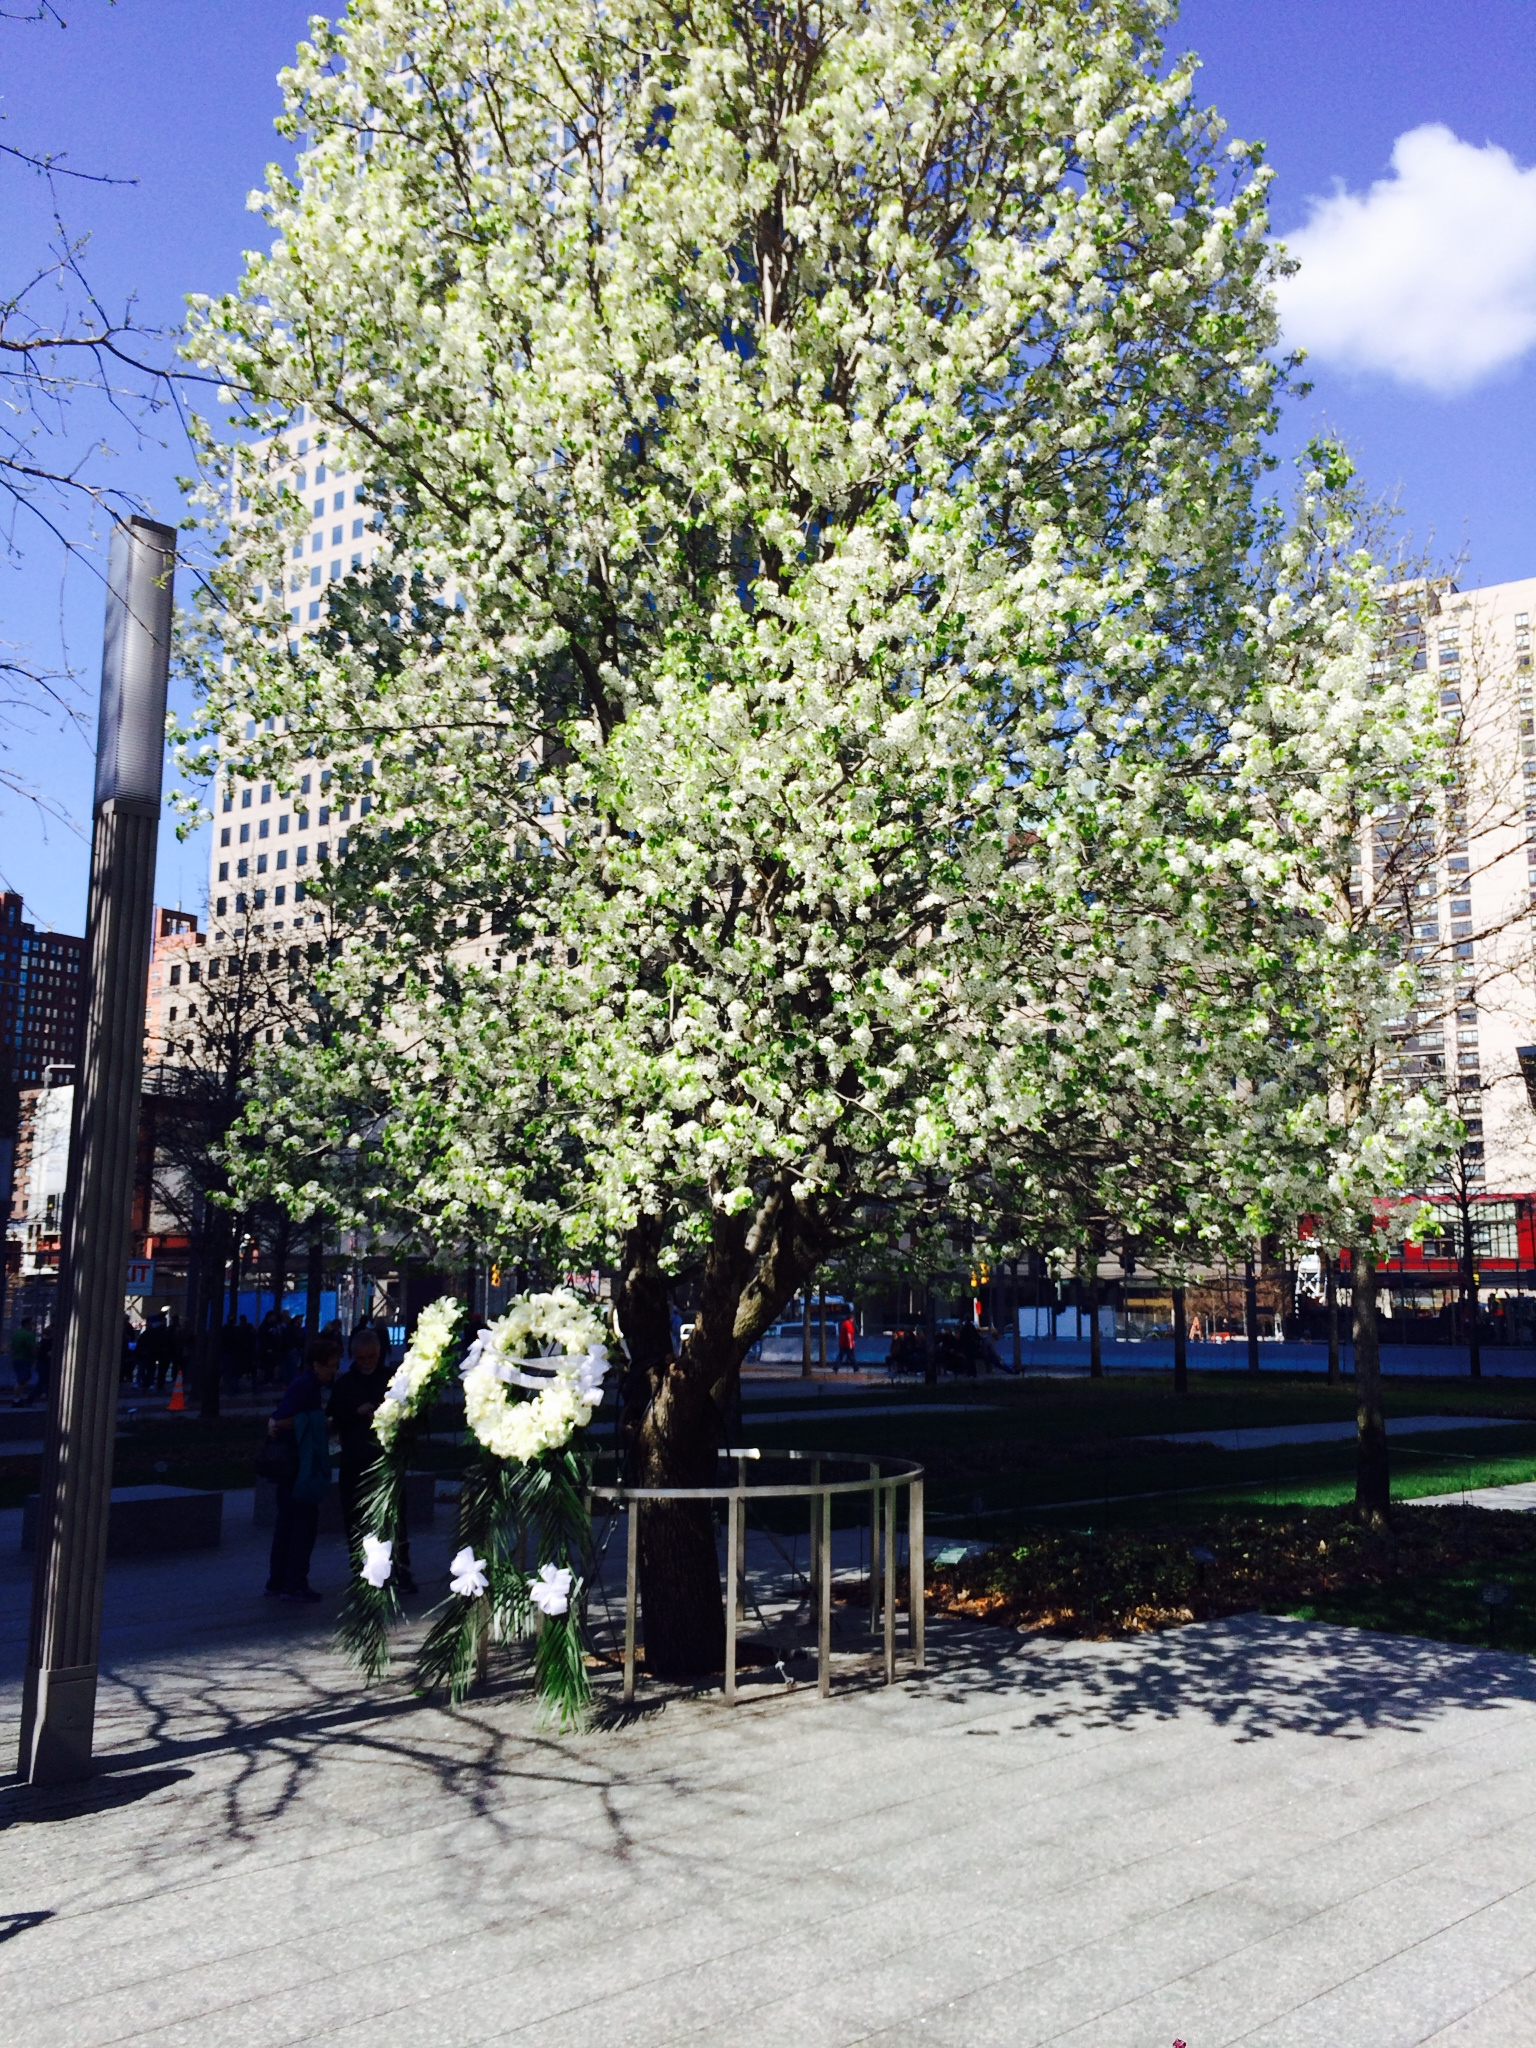 A tree that survived the terror attacks, blooming for spring.